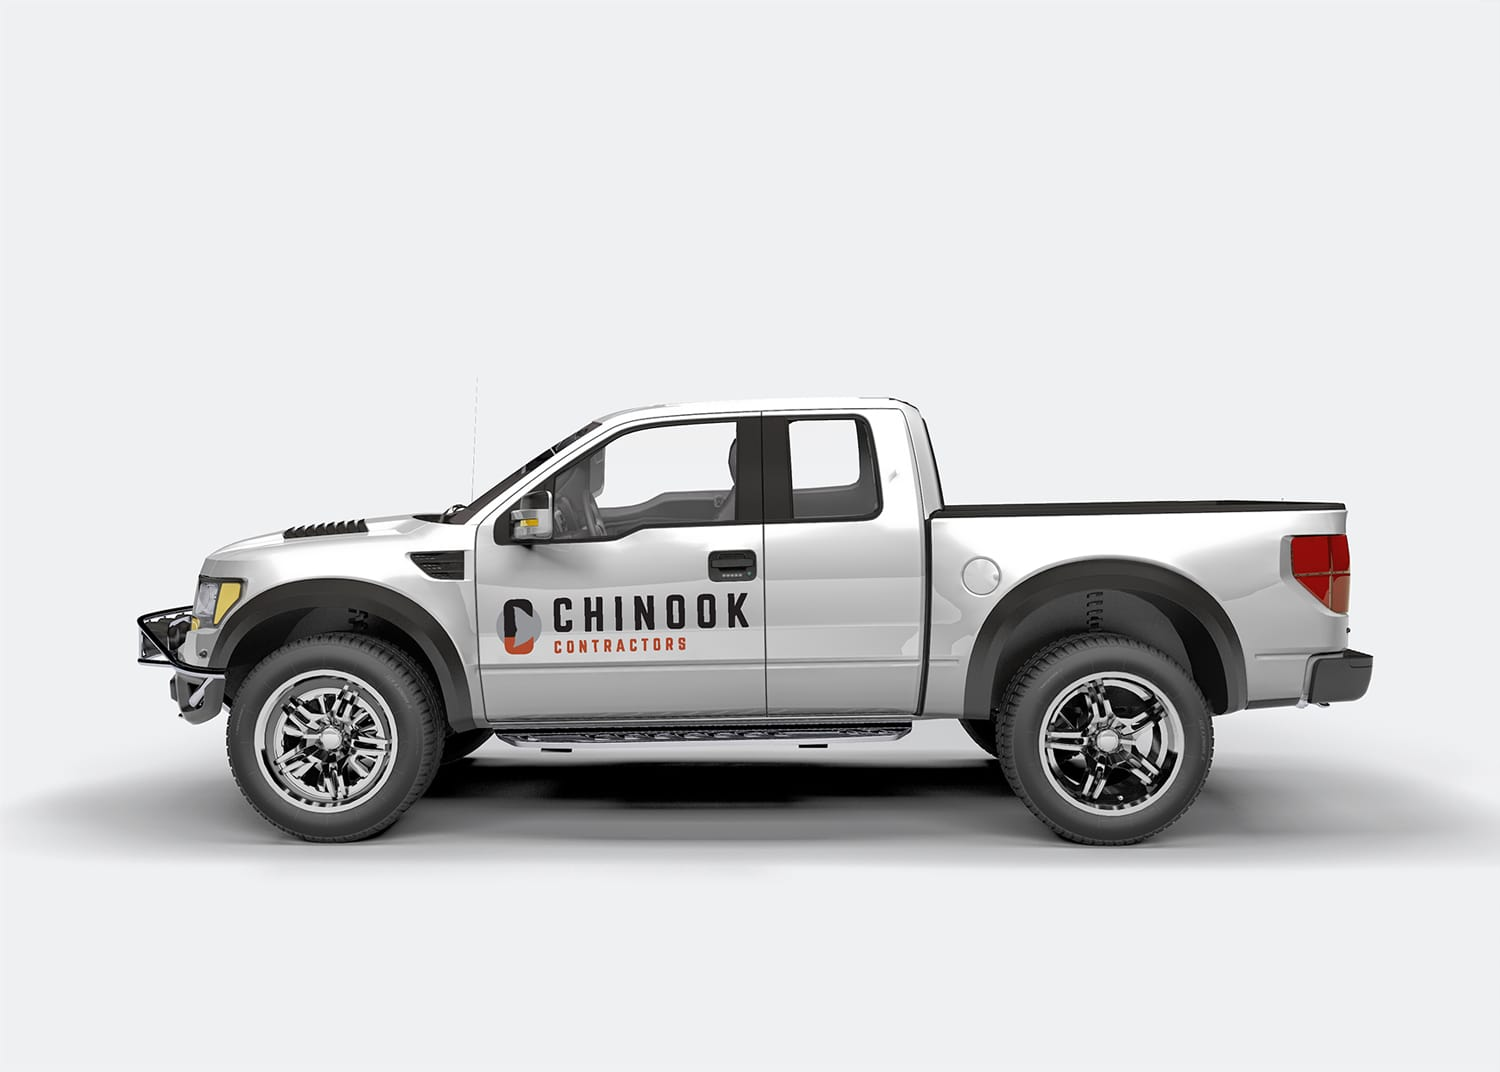 Chinook Contractors Truck Graphic